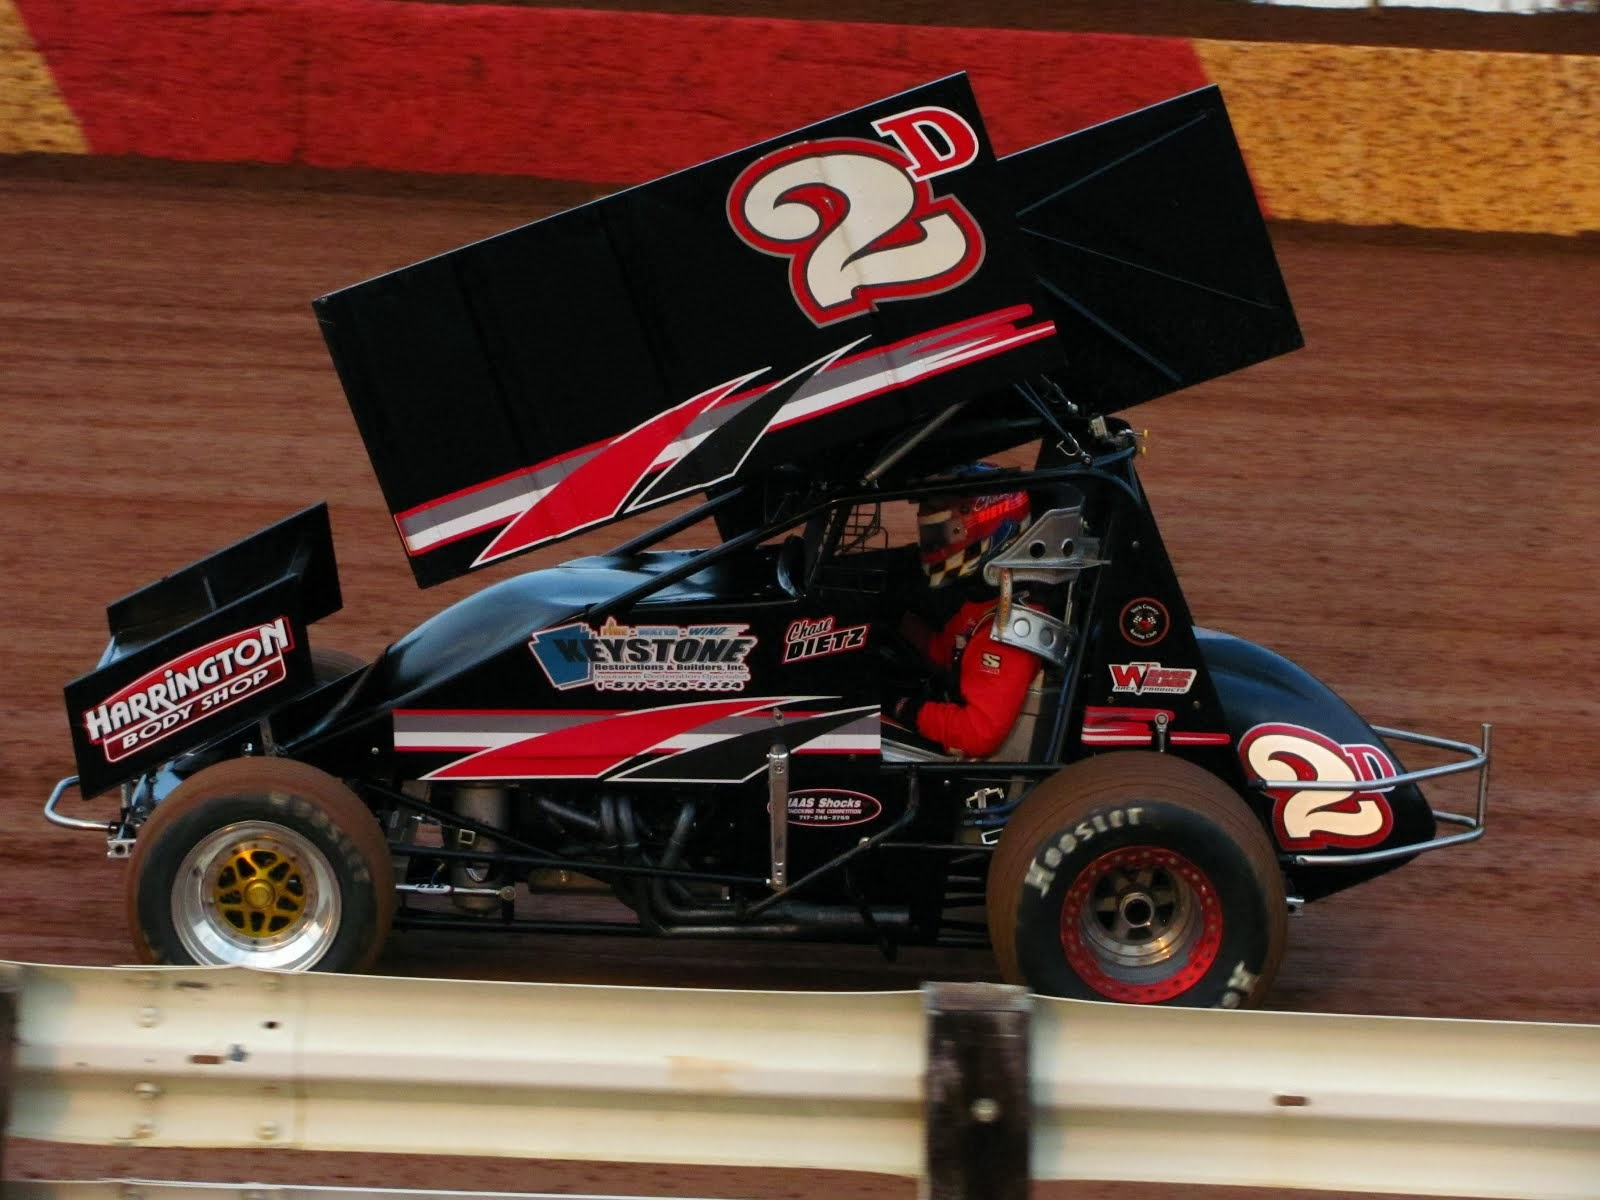 2013 Central PA 358 Point Series Rookie of the Year Chase Dietz